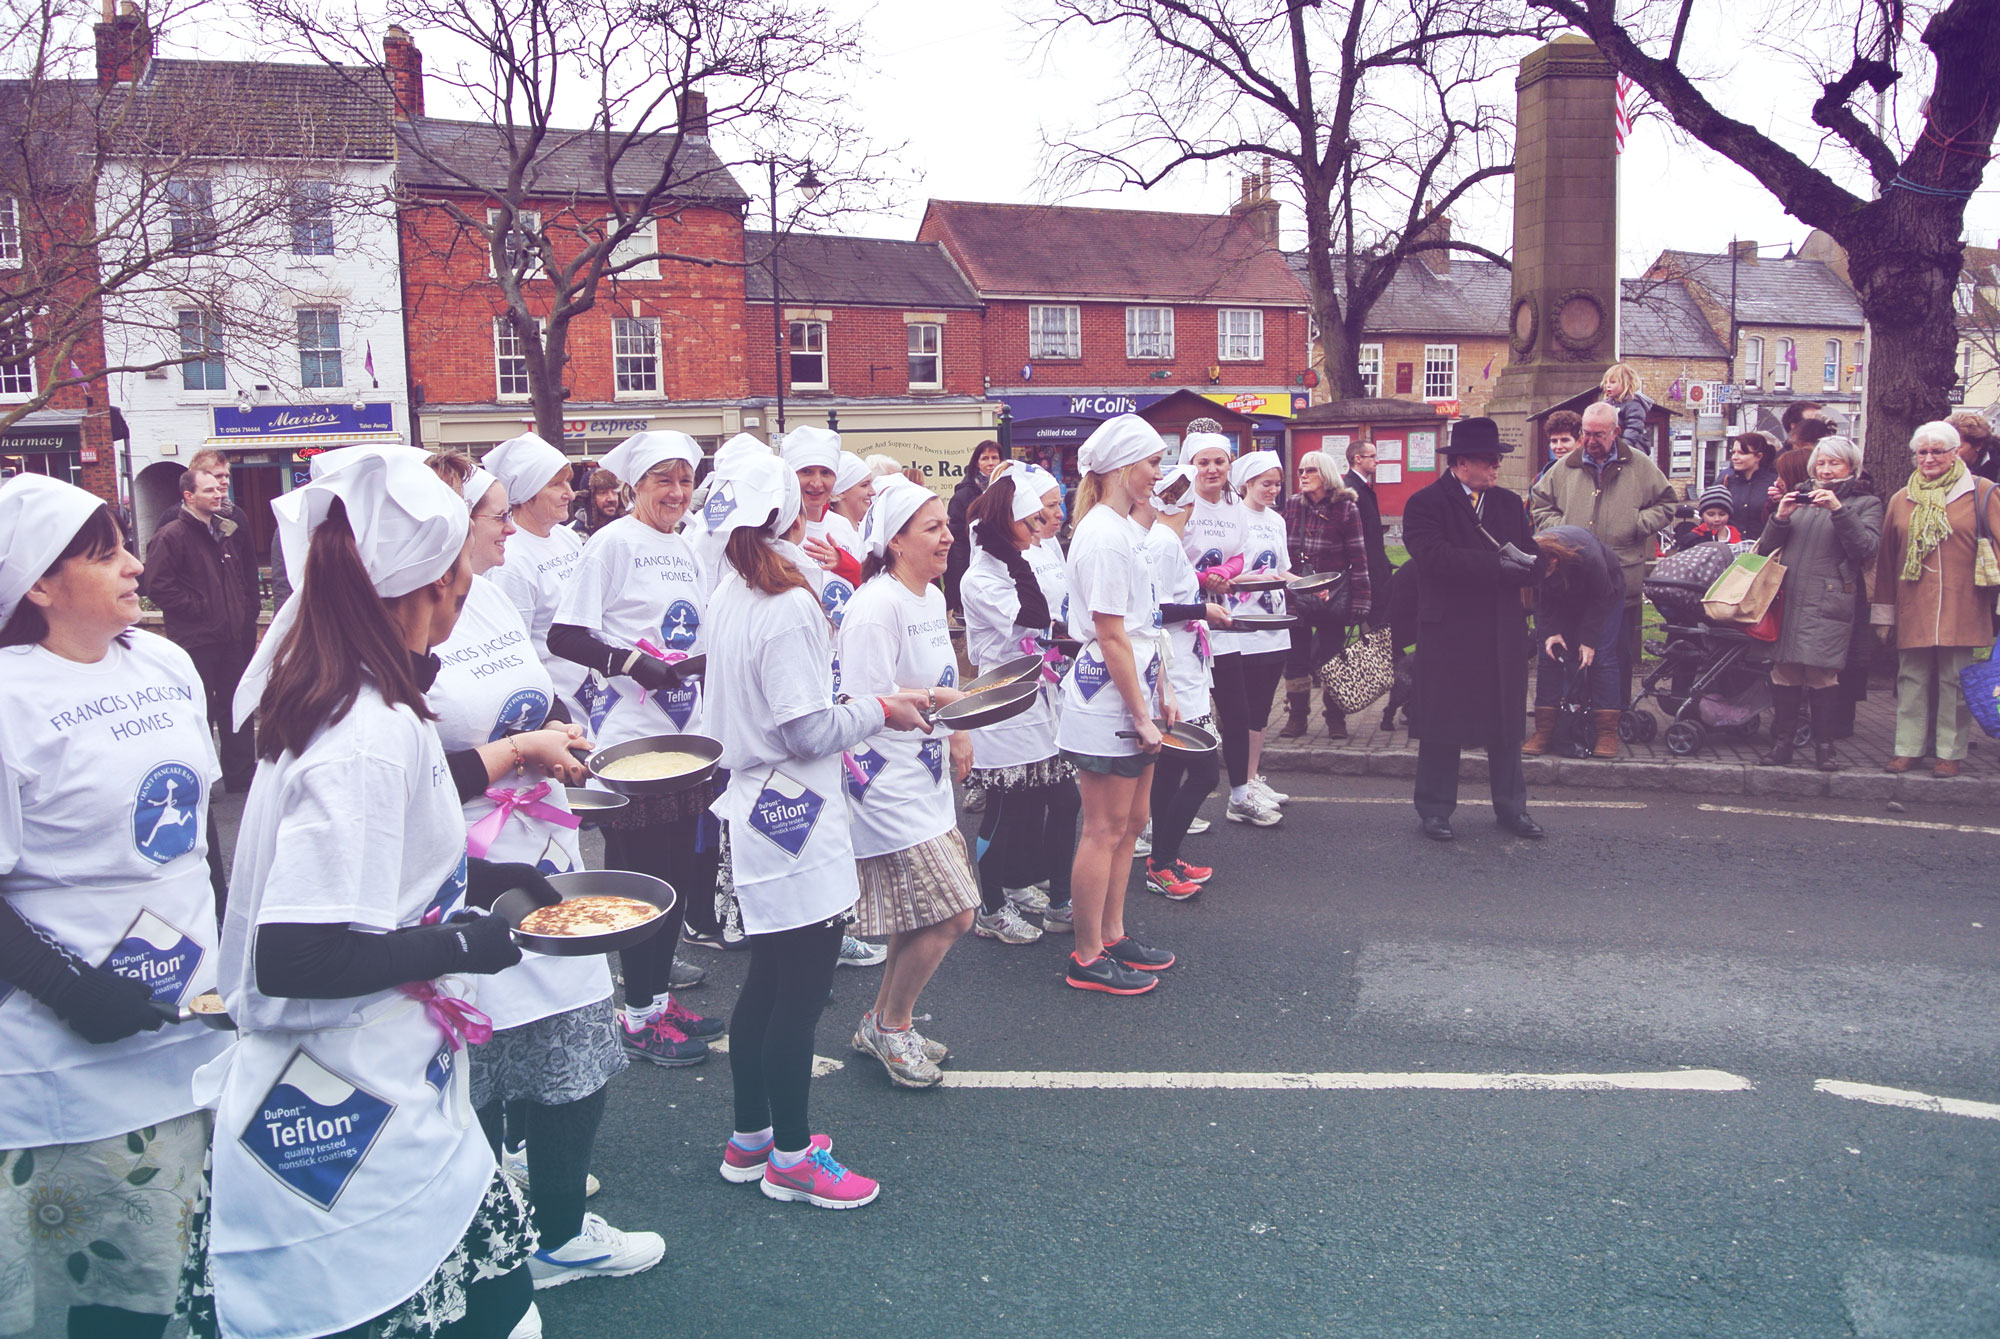 The girls line up at the start of the Olney Pancake Race